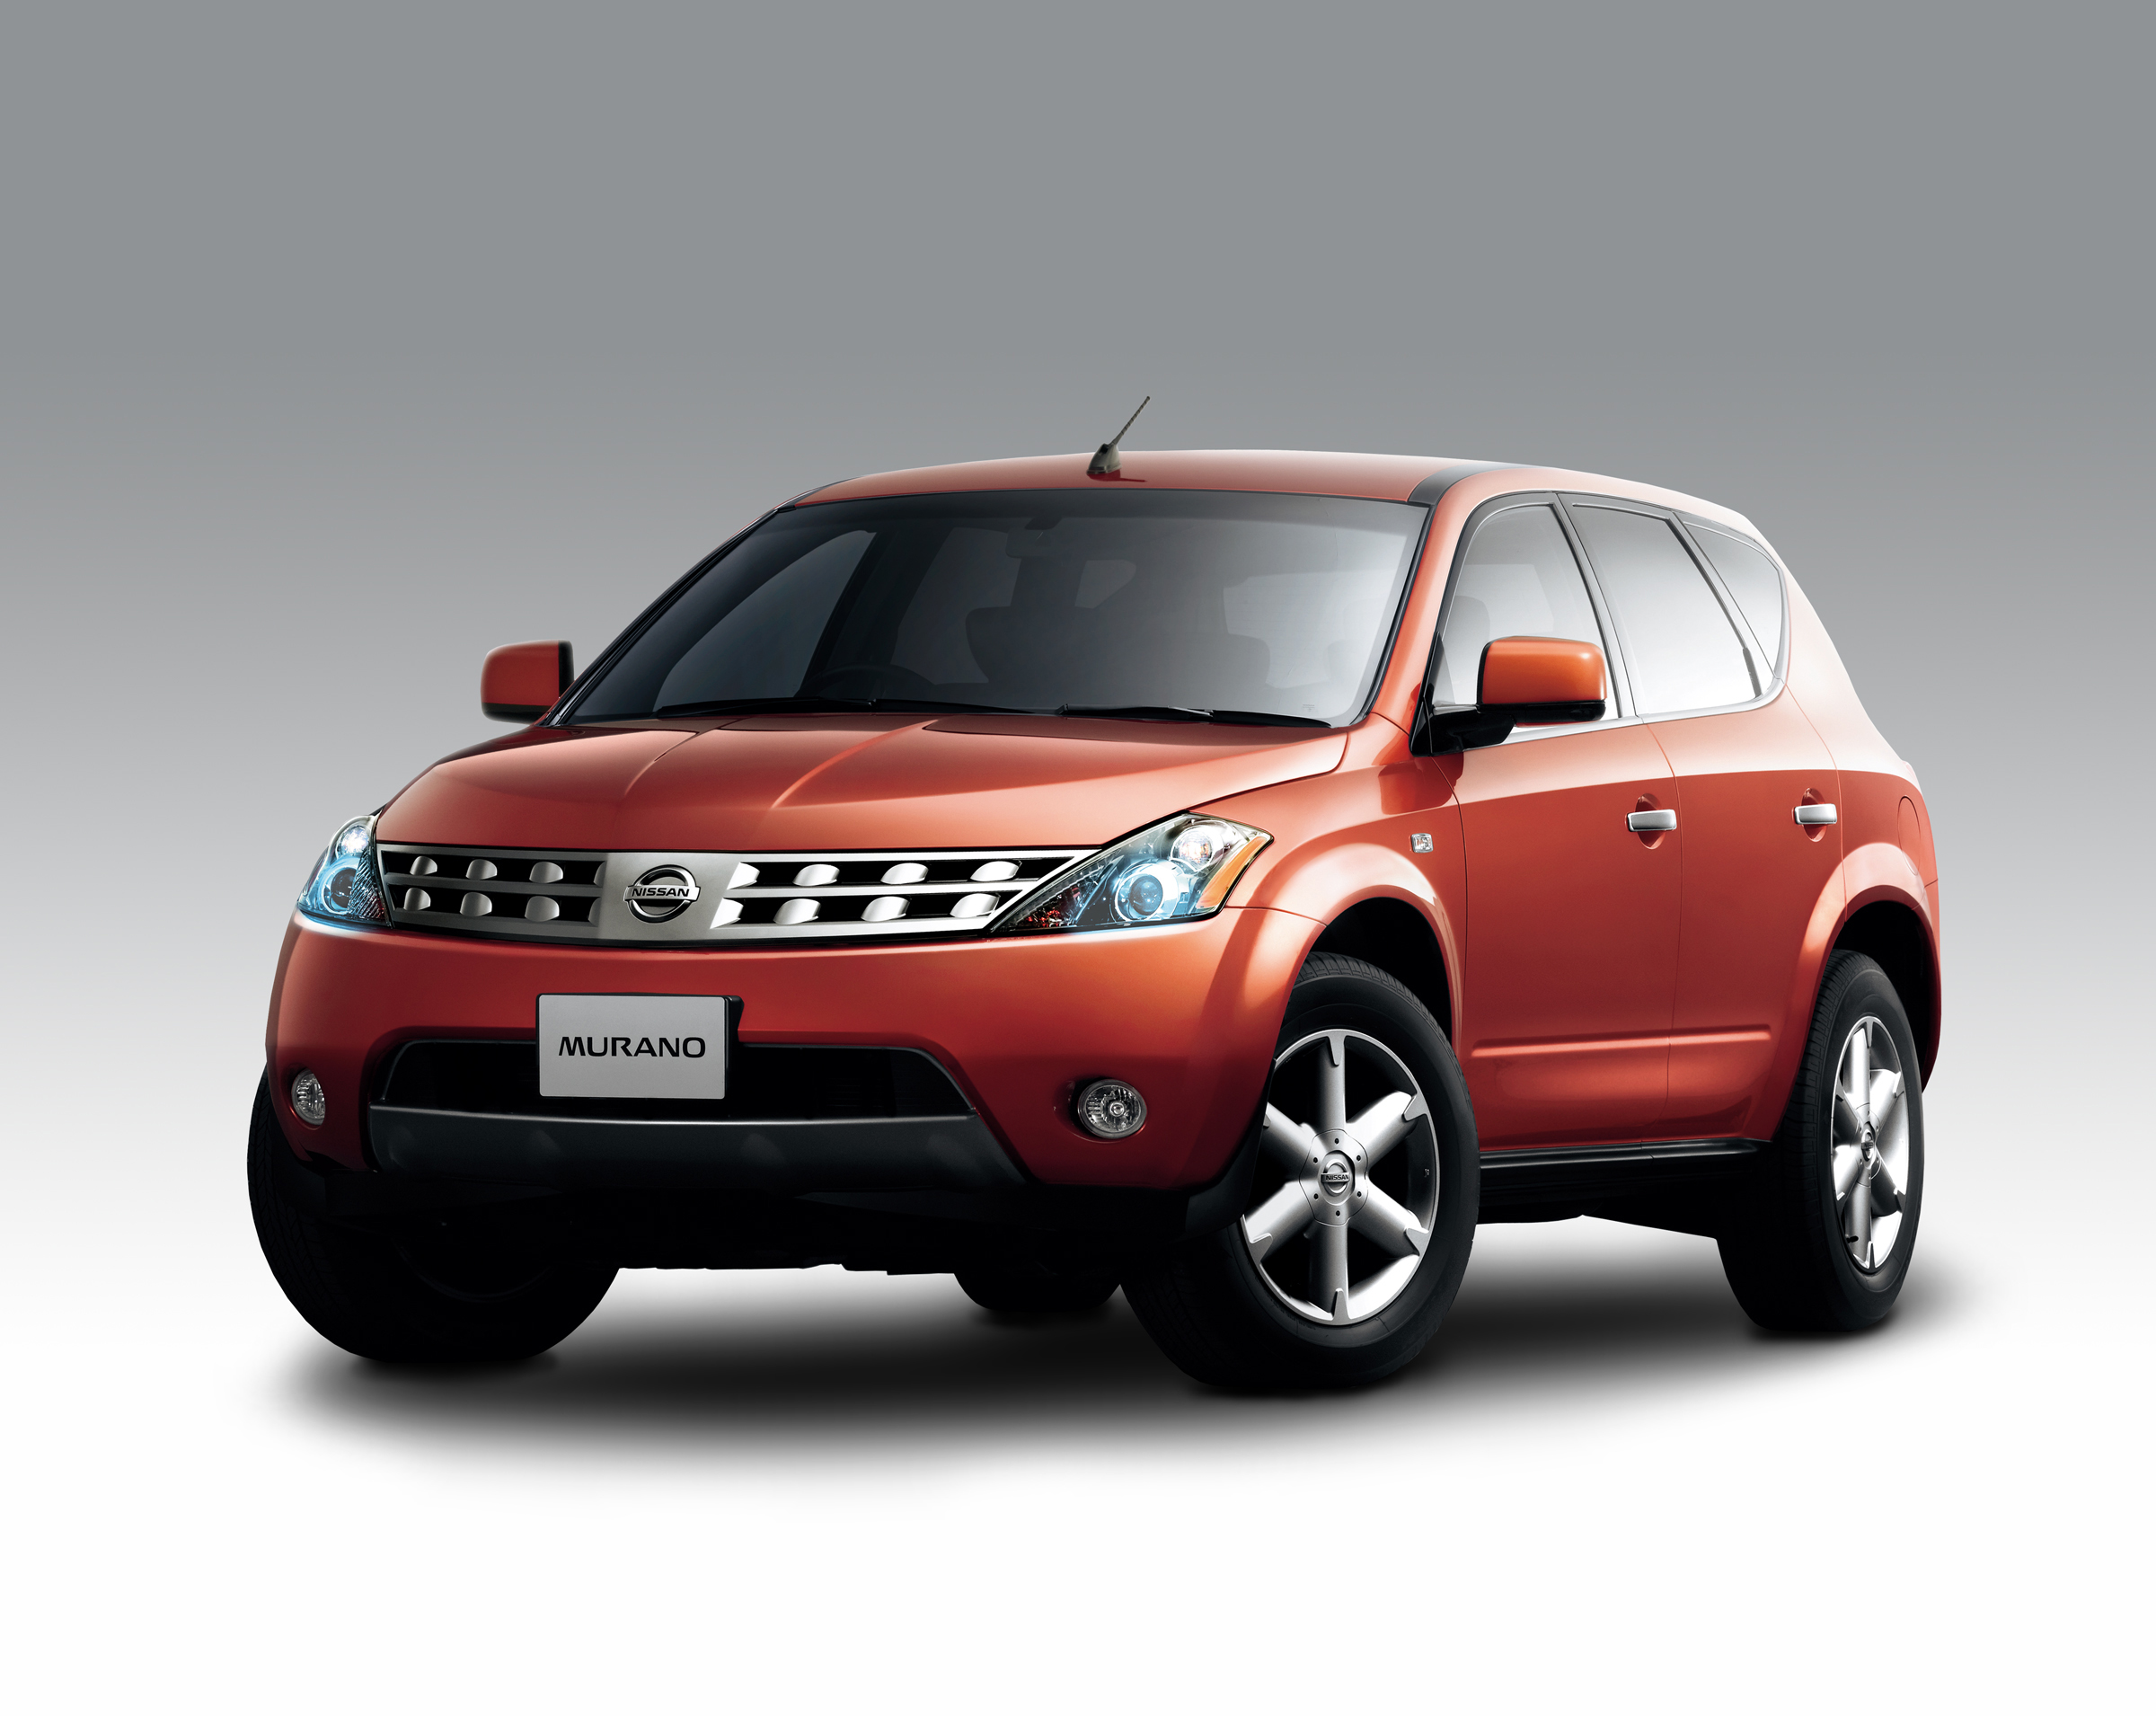 2007 nissan murano review top speed. Black Bedroom Furniture Sets. Home Design Ideas